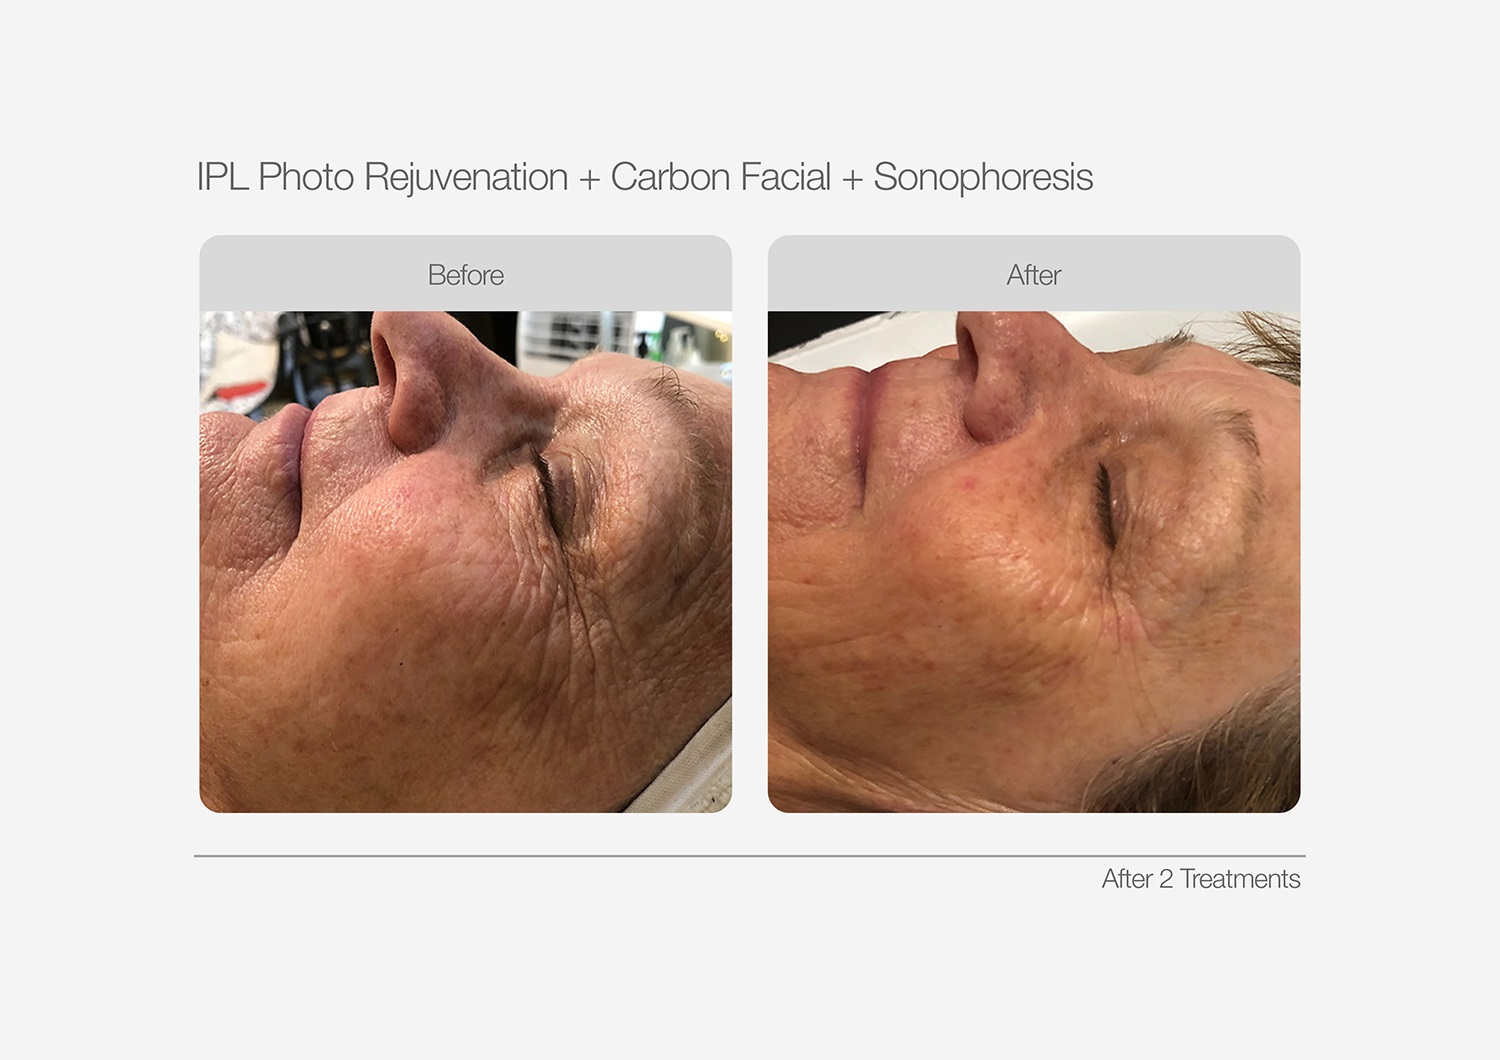 IPL-Photo-Rejuvenation-Before-After-01